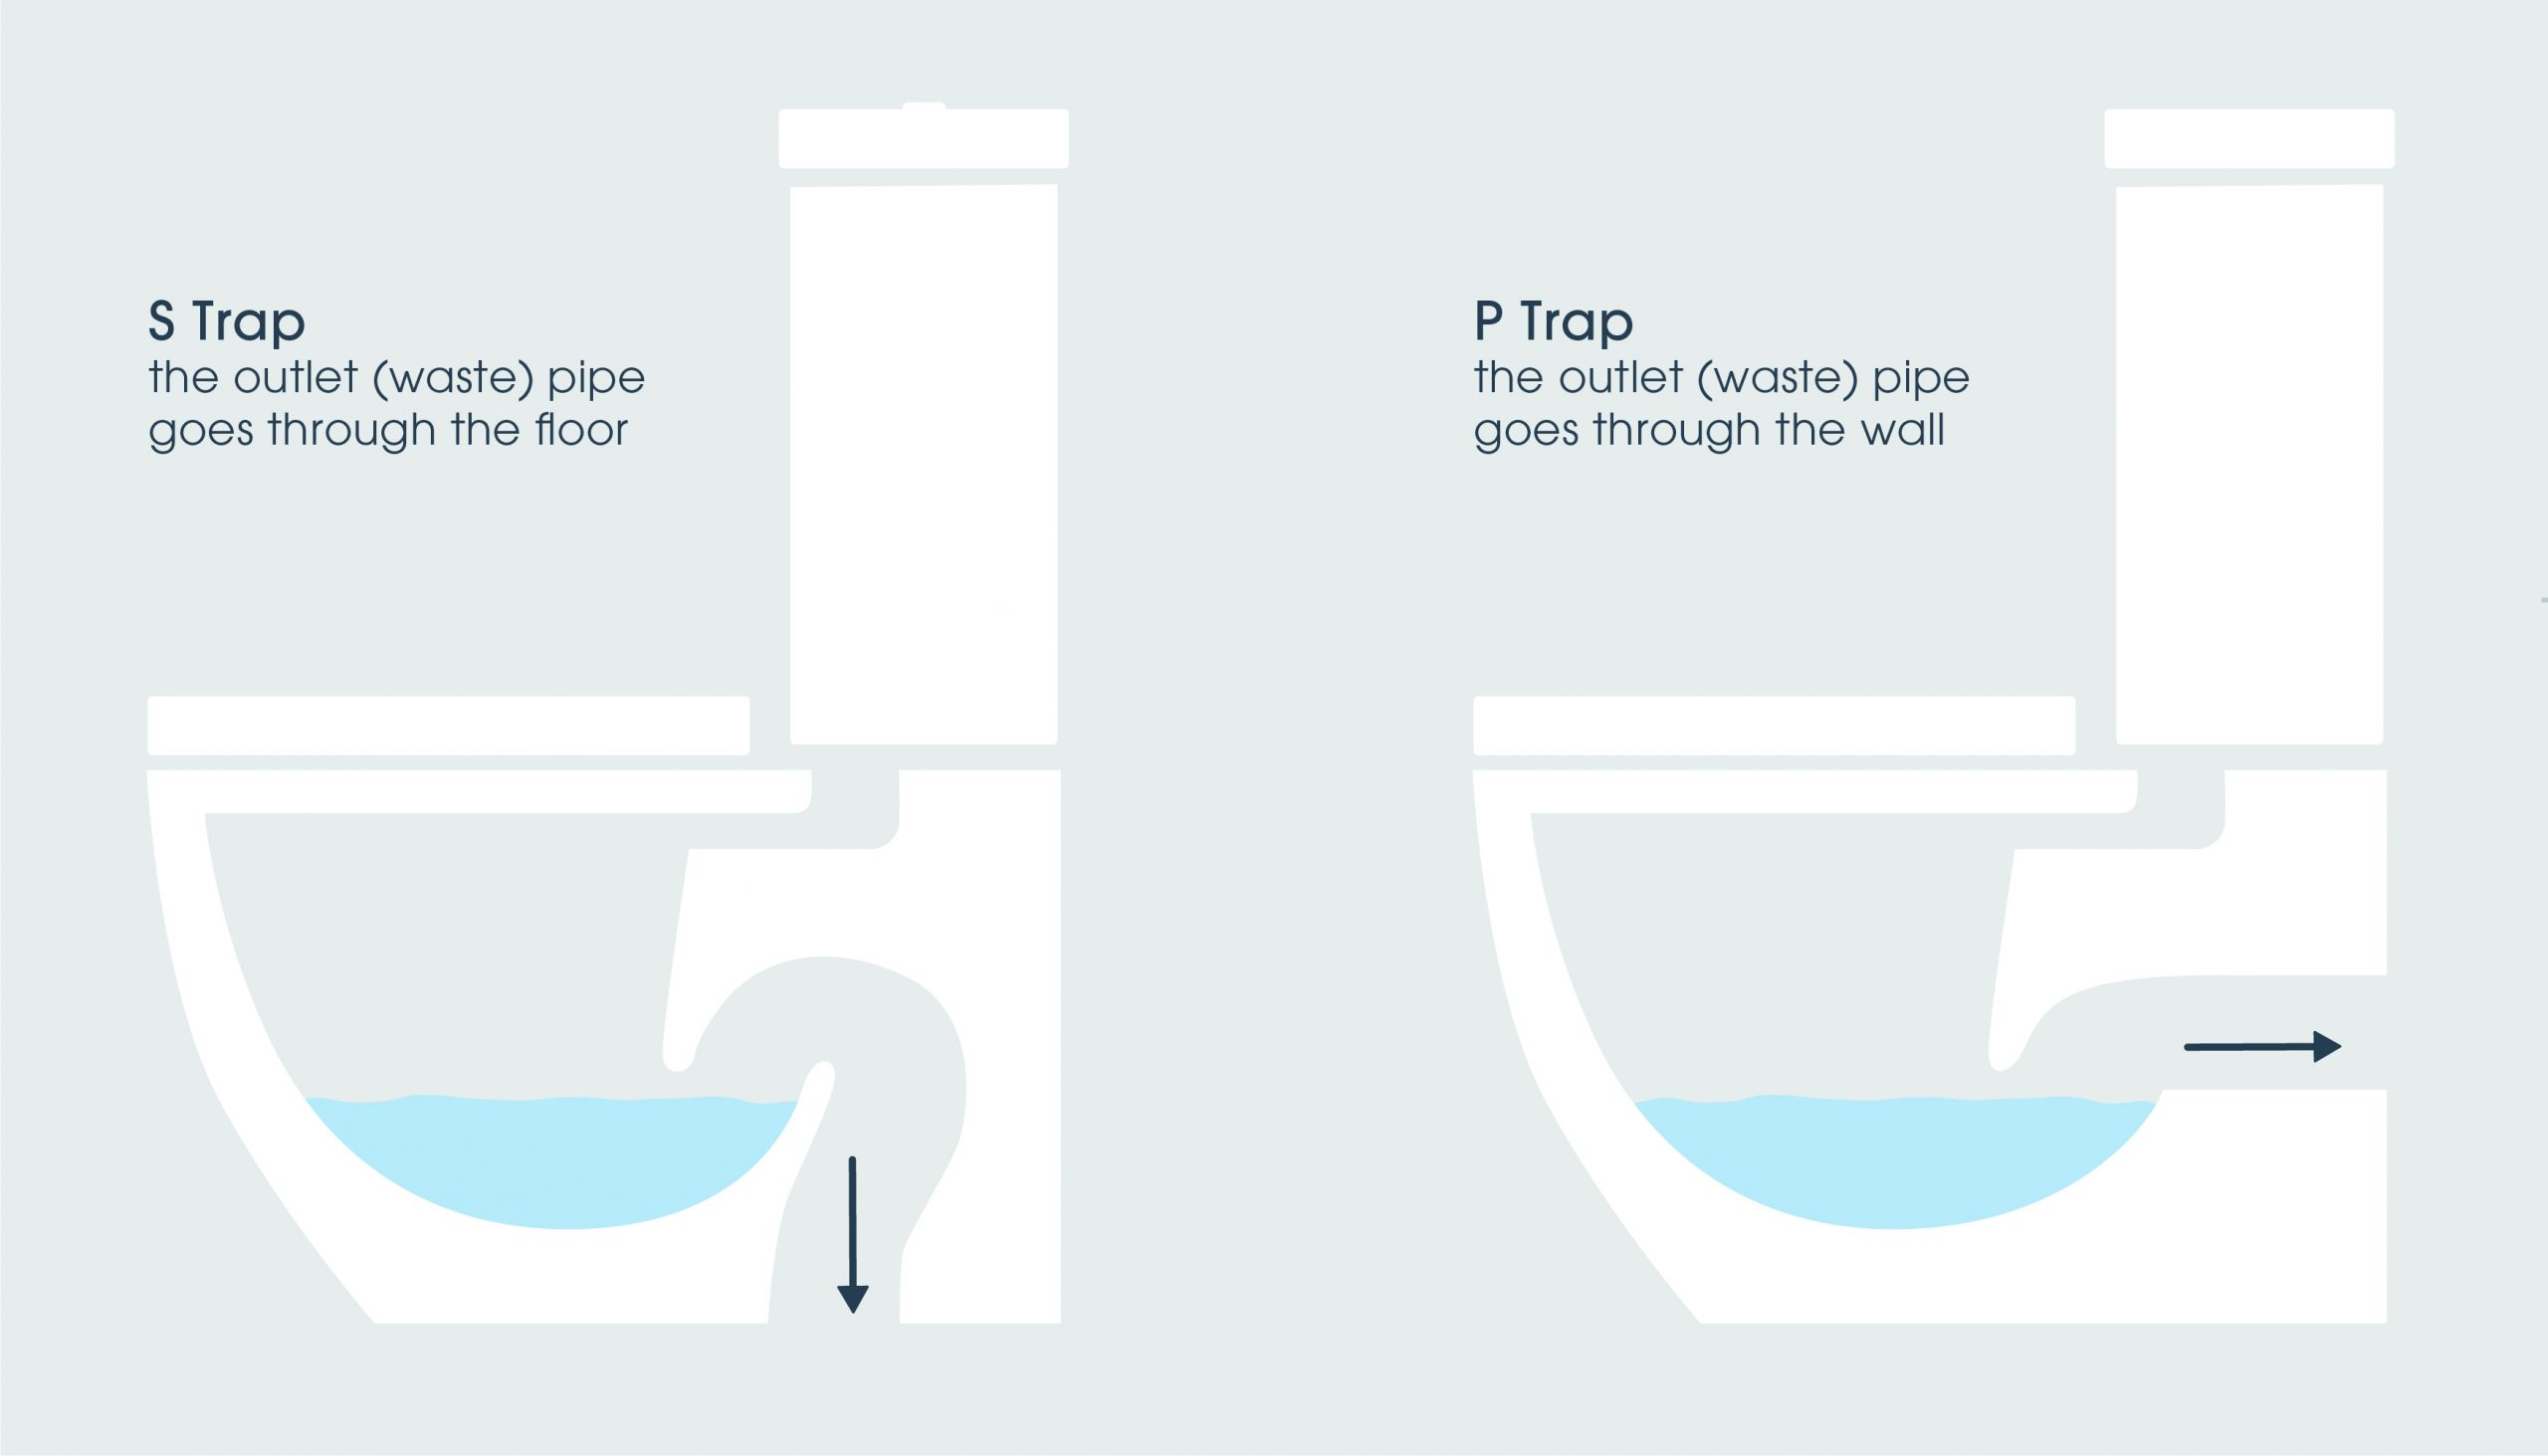 Difference between s-trap and p-trap toilets